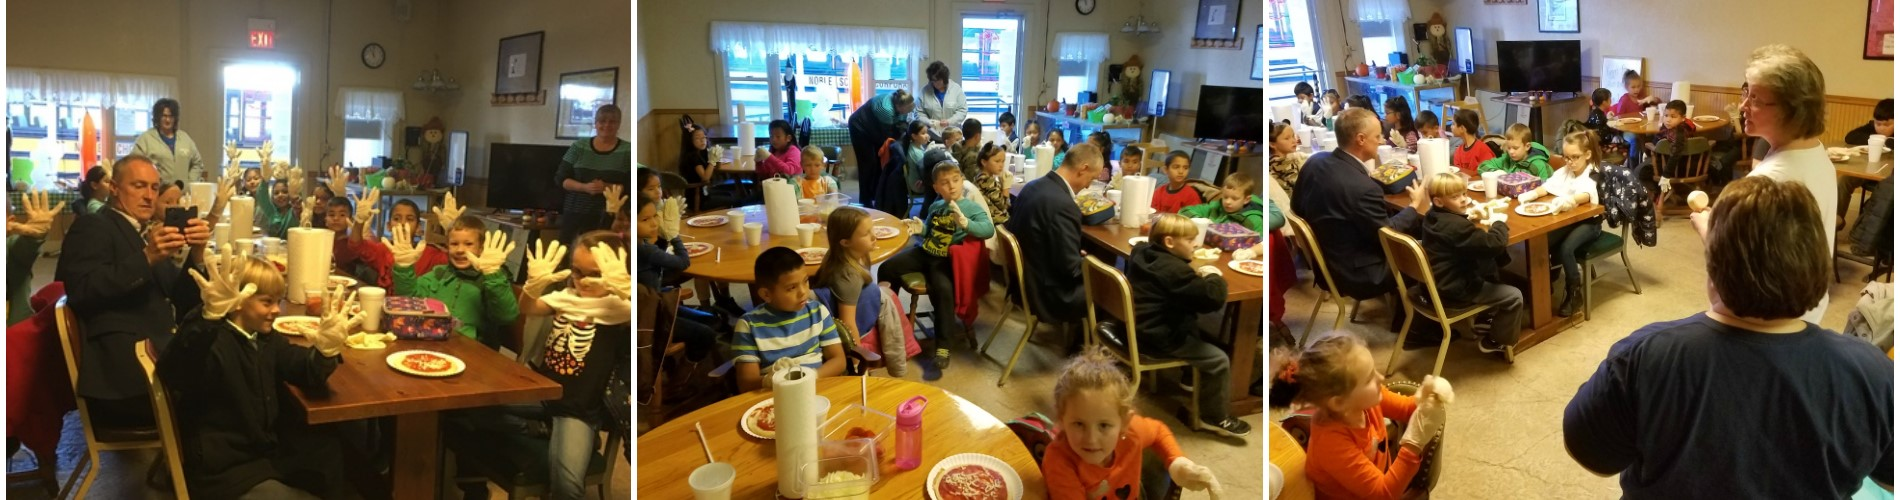 Field trip to Vinee's Pizza for 1st-graders.